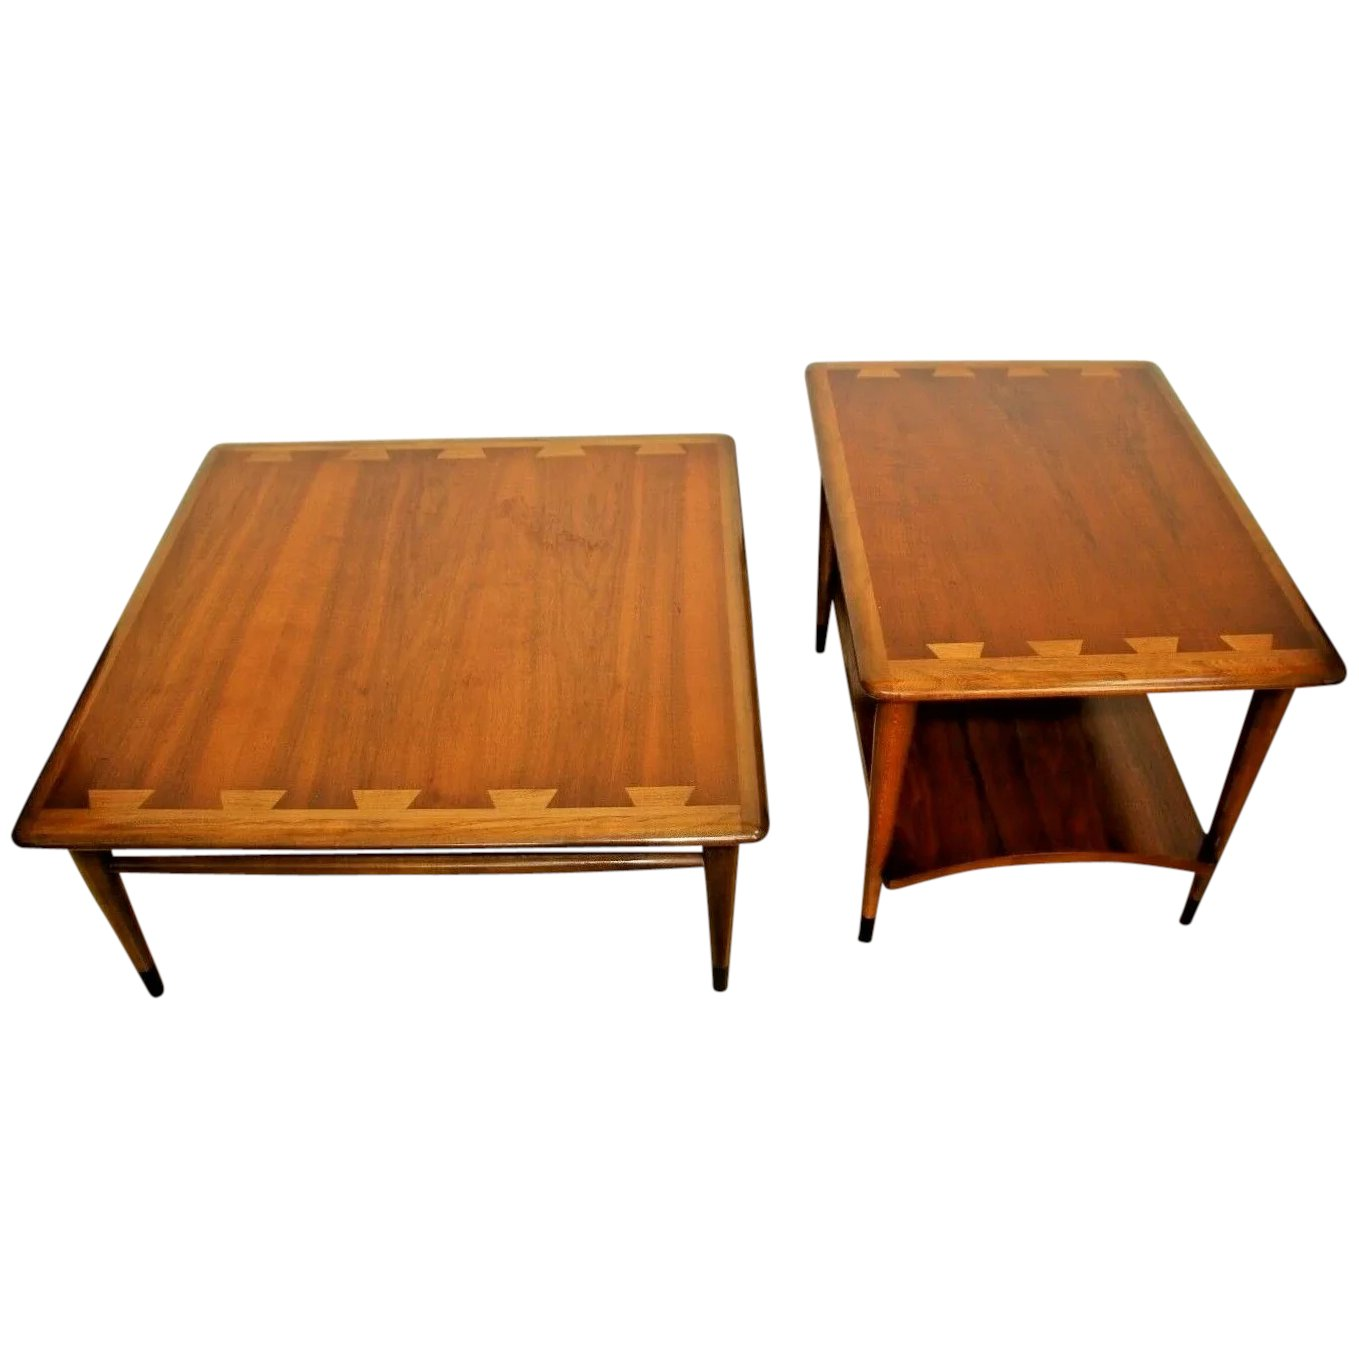 Image of: Lane Acclaim Mid Century Modern Coffee And End Tables Set Of Two At Melrose Vintage And Antique Furniture Ruby Lane